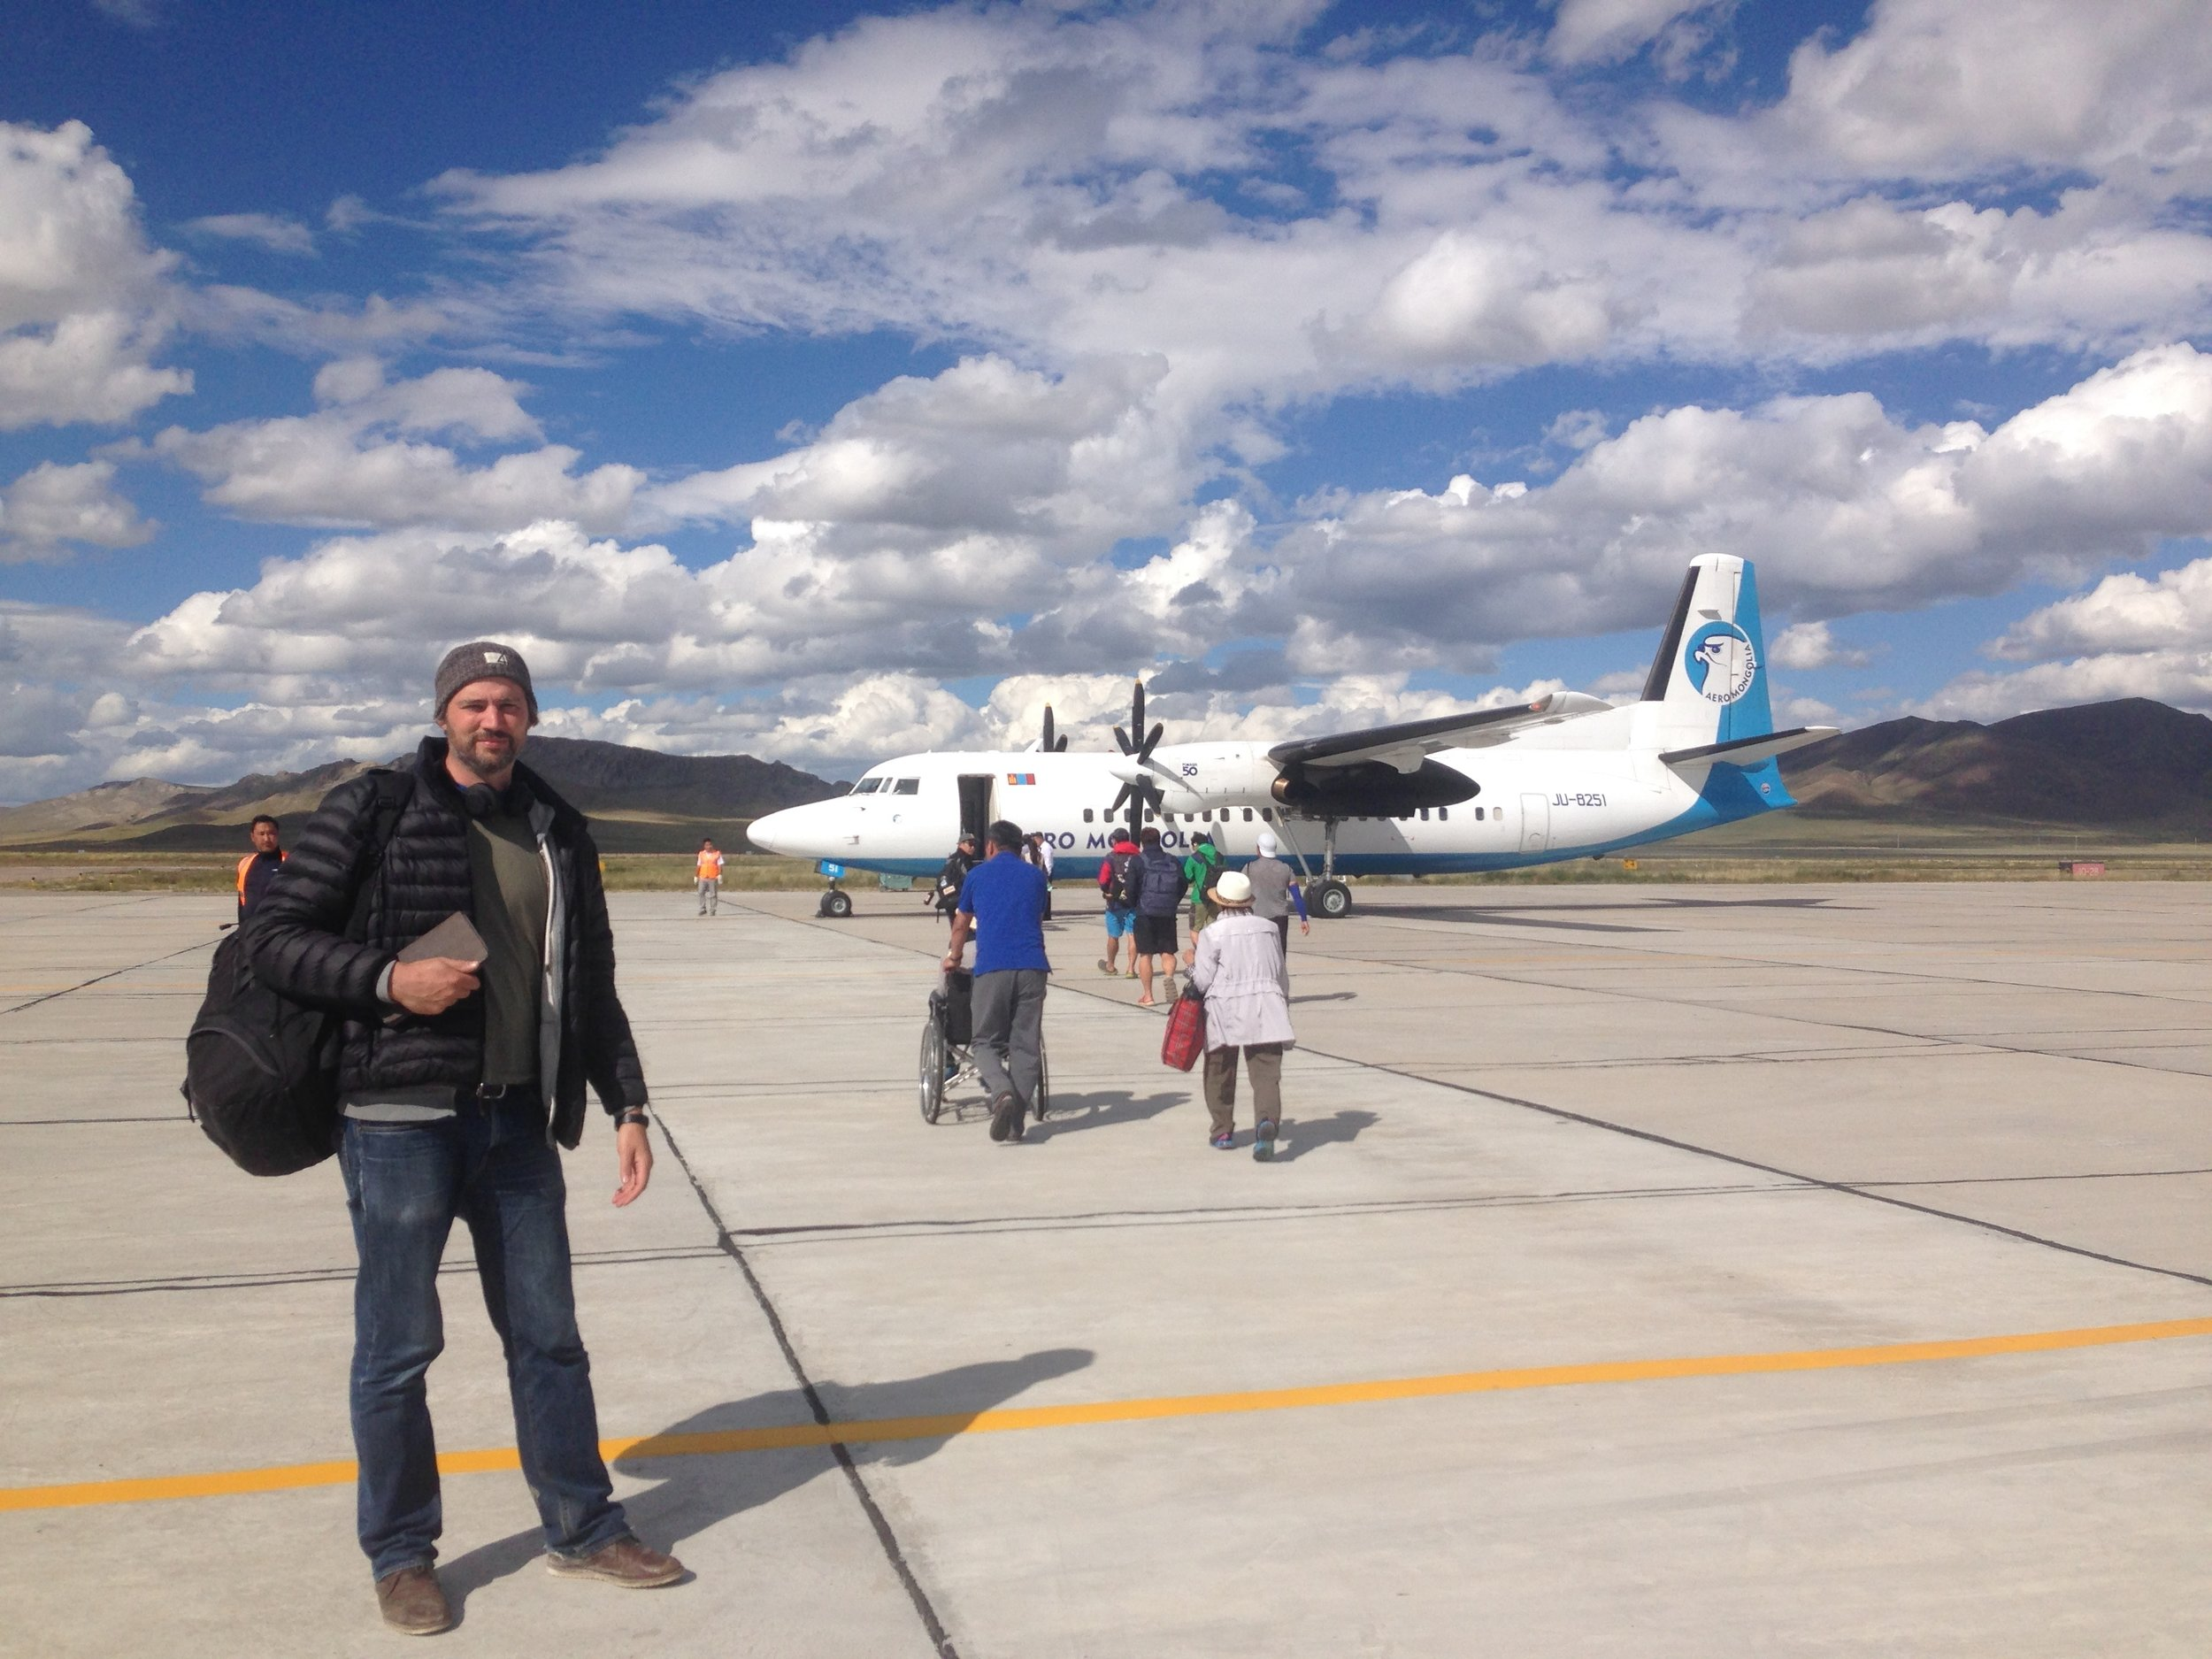 Travelling to the next location during a 10-day shoot in Mongolia